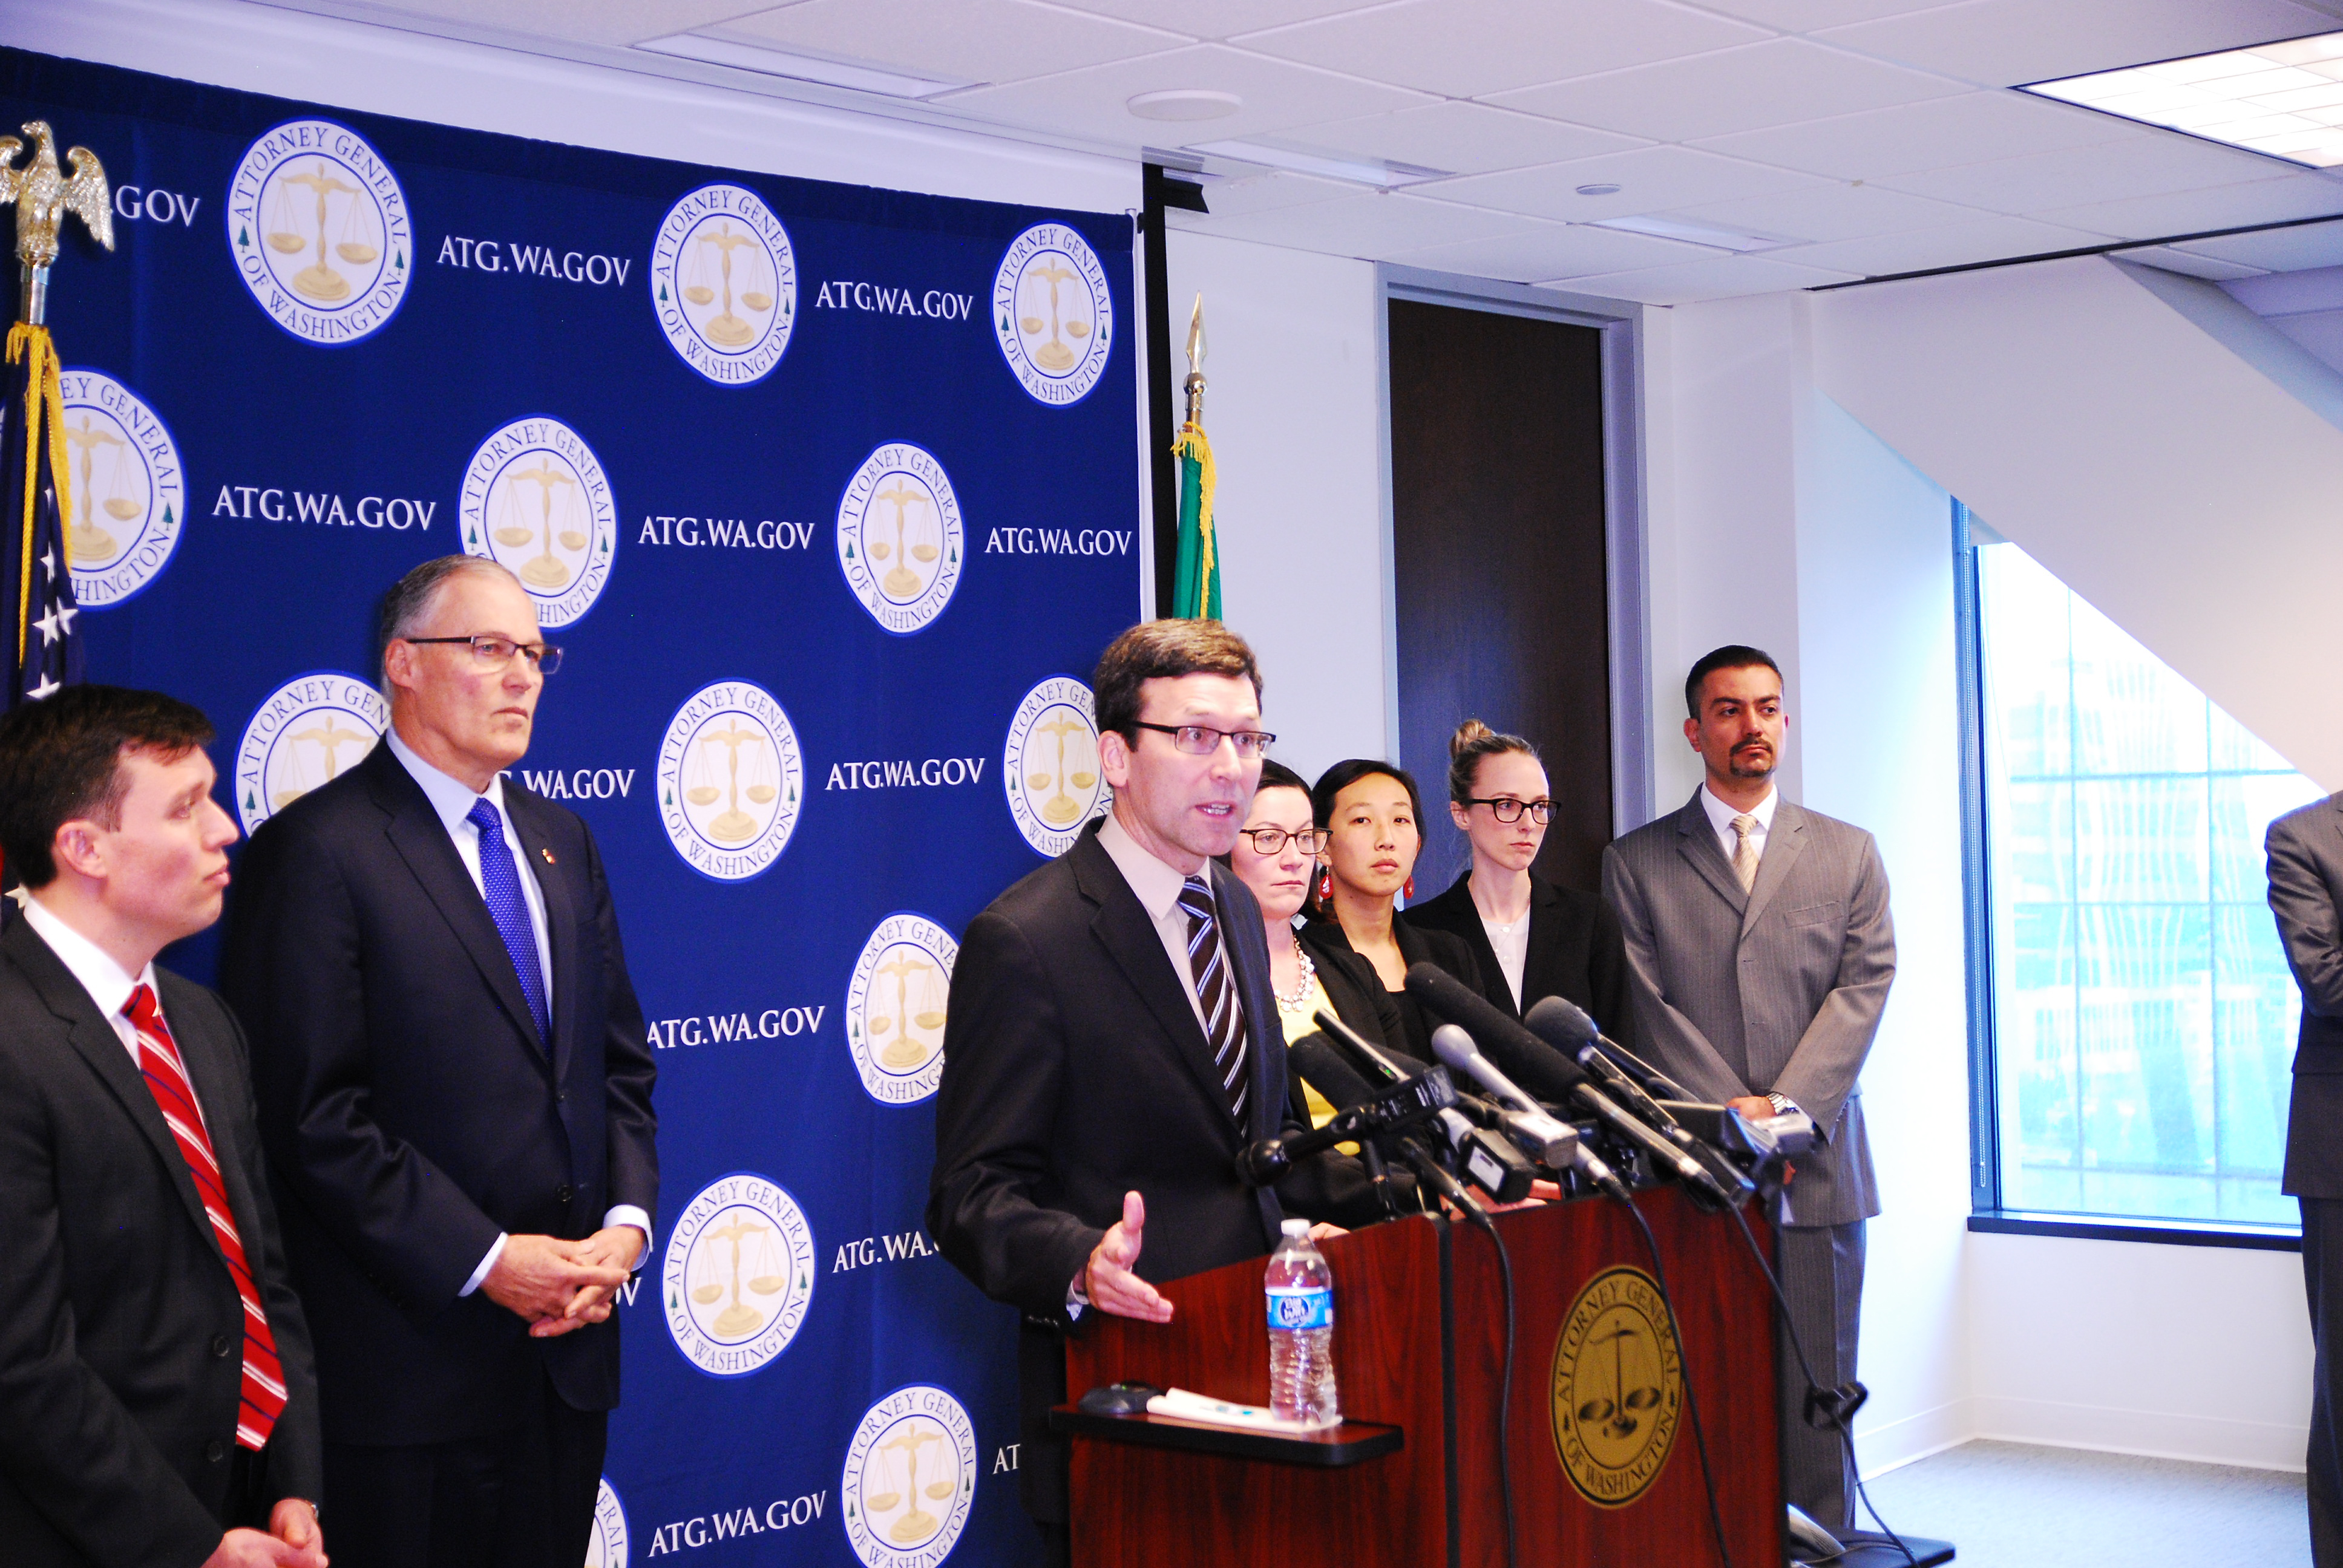 Attorney General Bob Ferguson announces lawsuit challenging Trump executive orders at a Jan. 30, 2017 press conference.